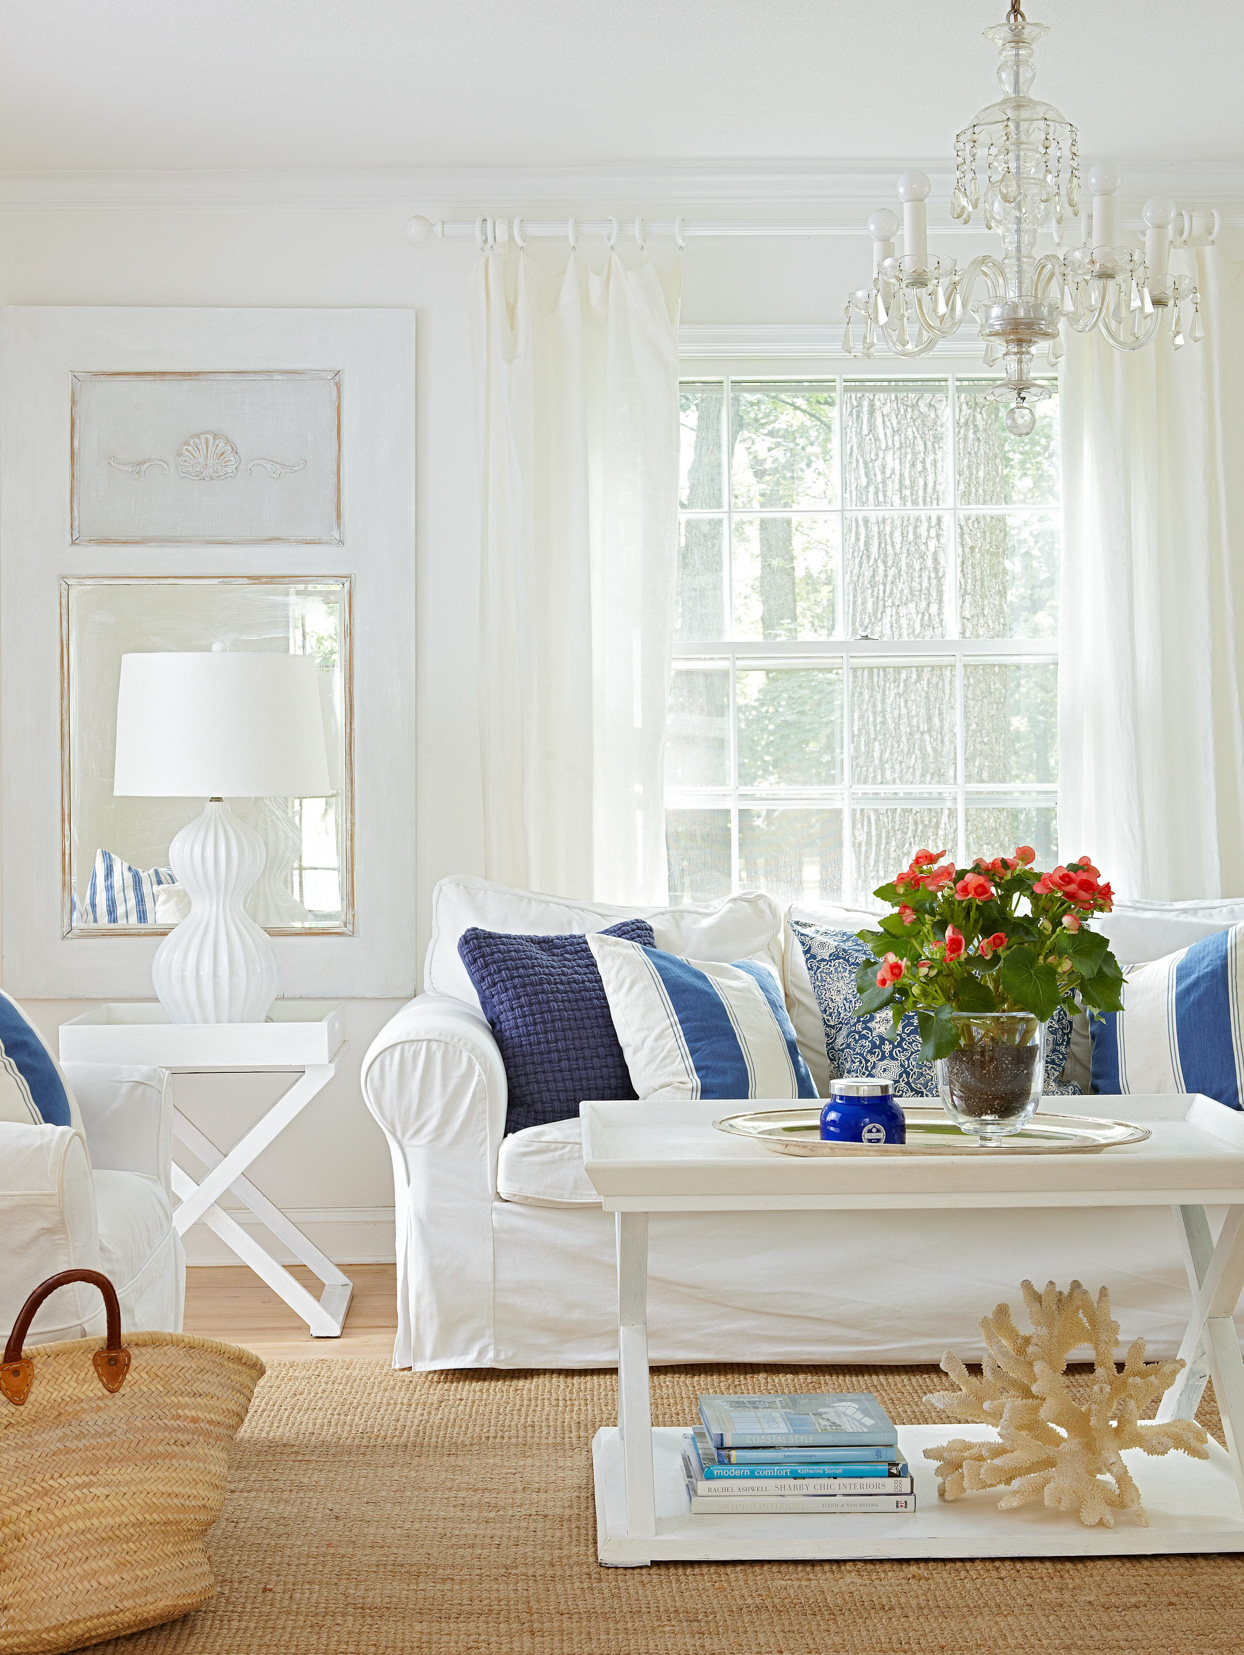 white living room with blue decorative pillows